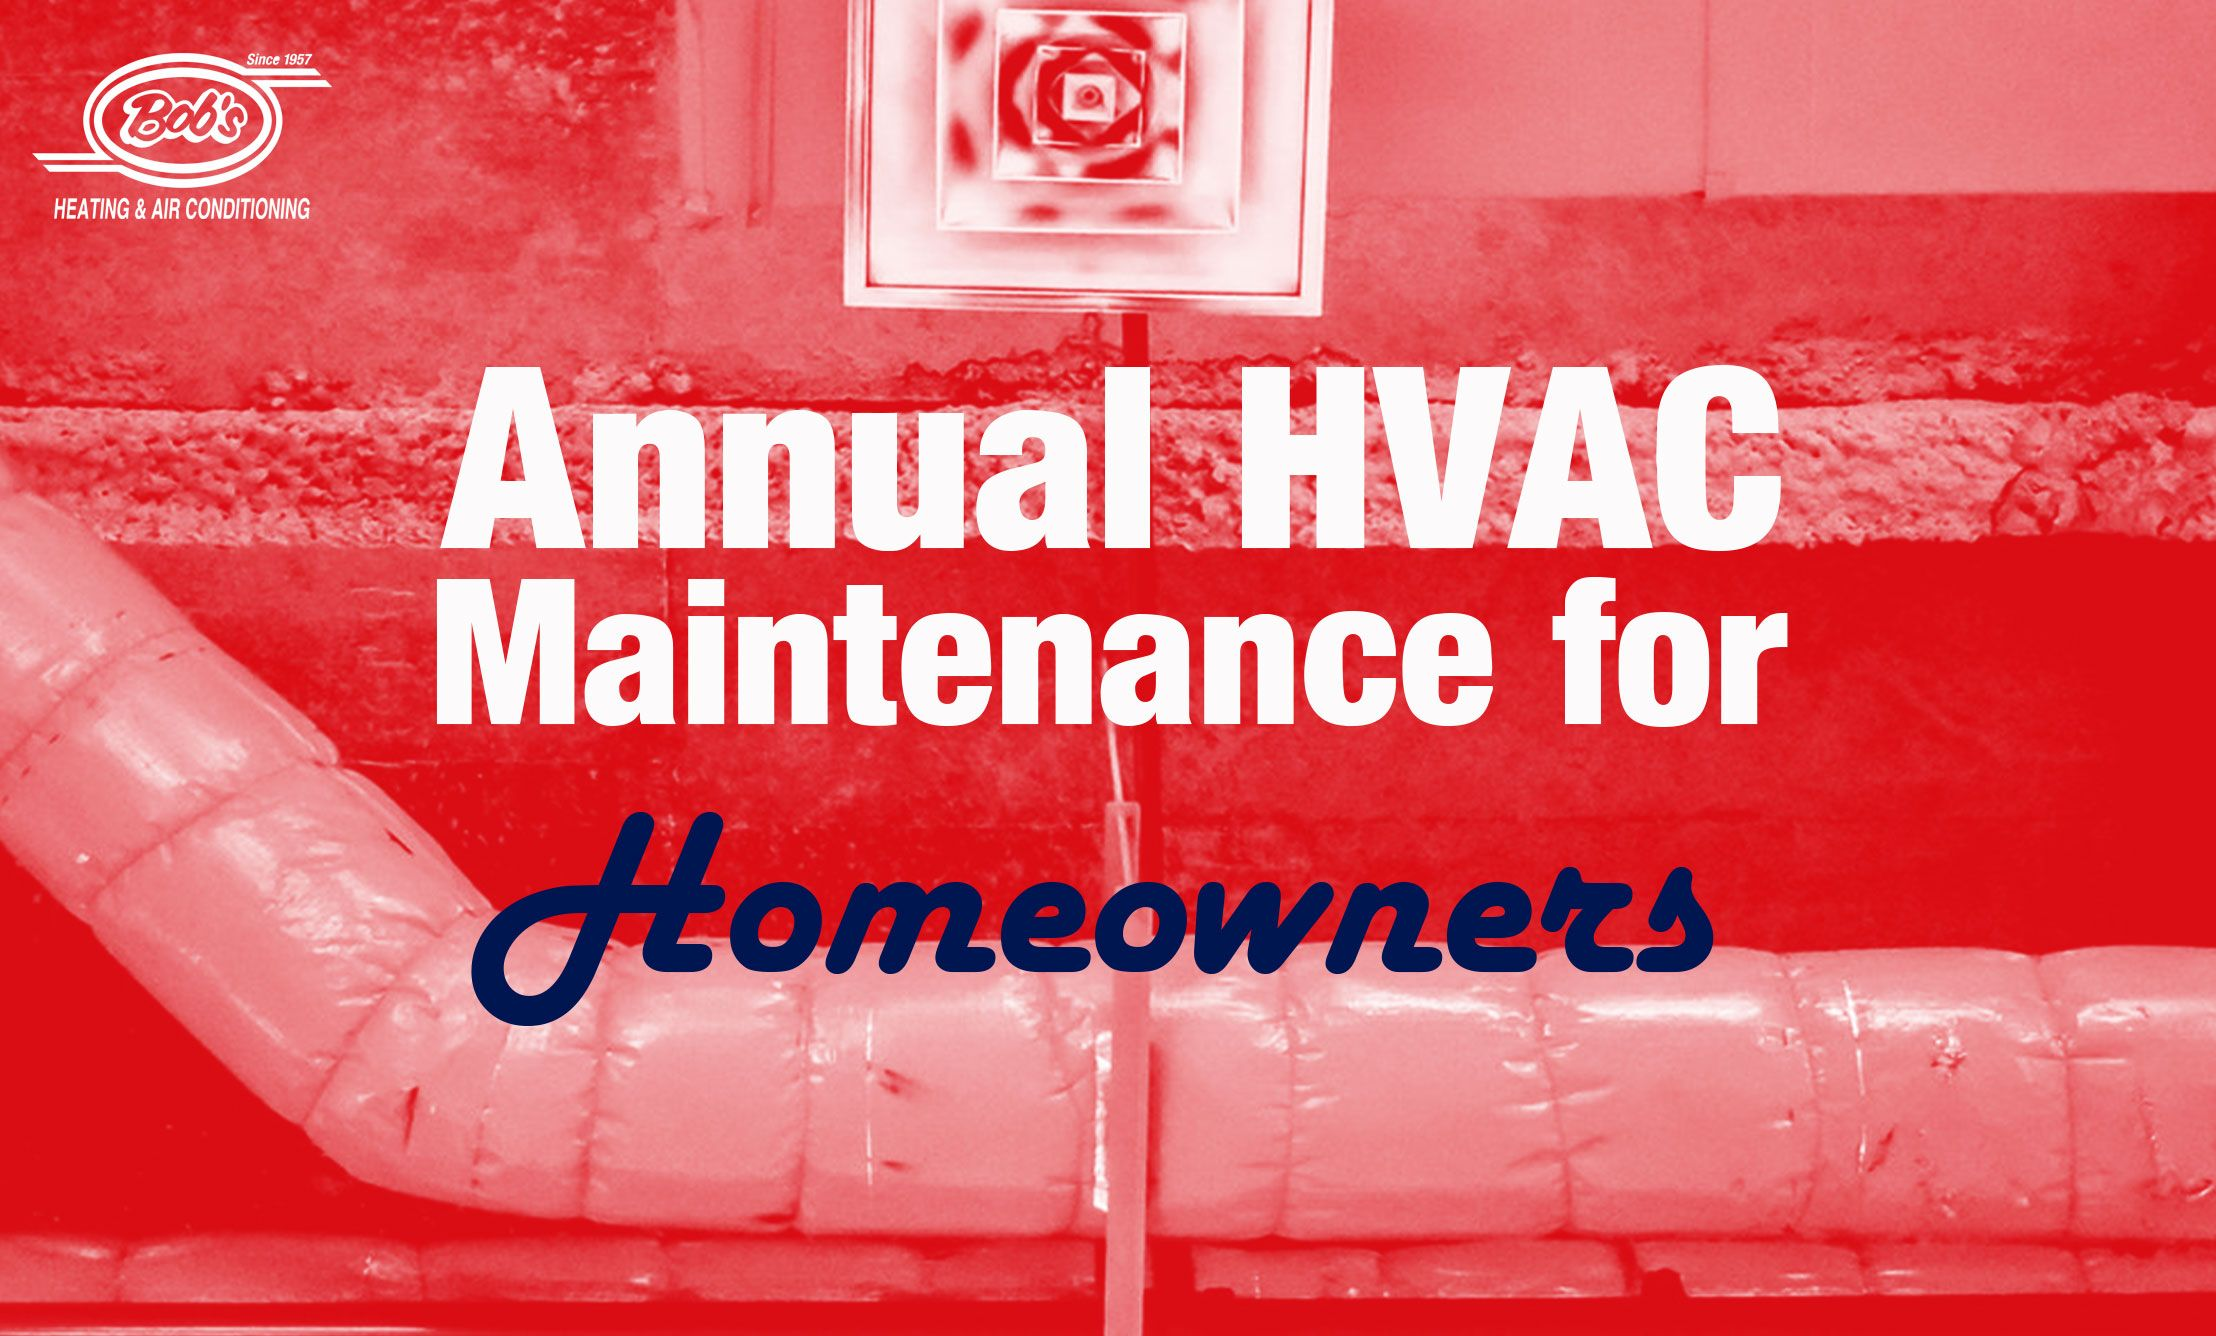 Annual Maintenance Plans Offered by Hvac maintenance